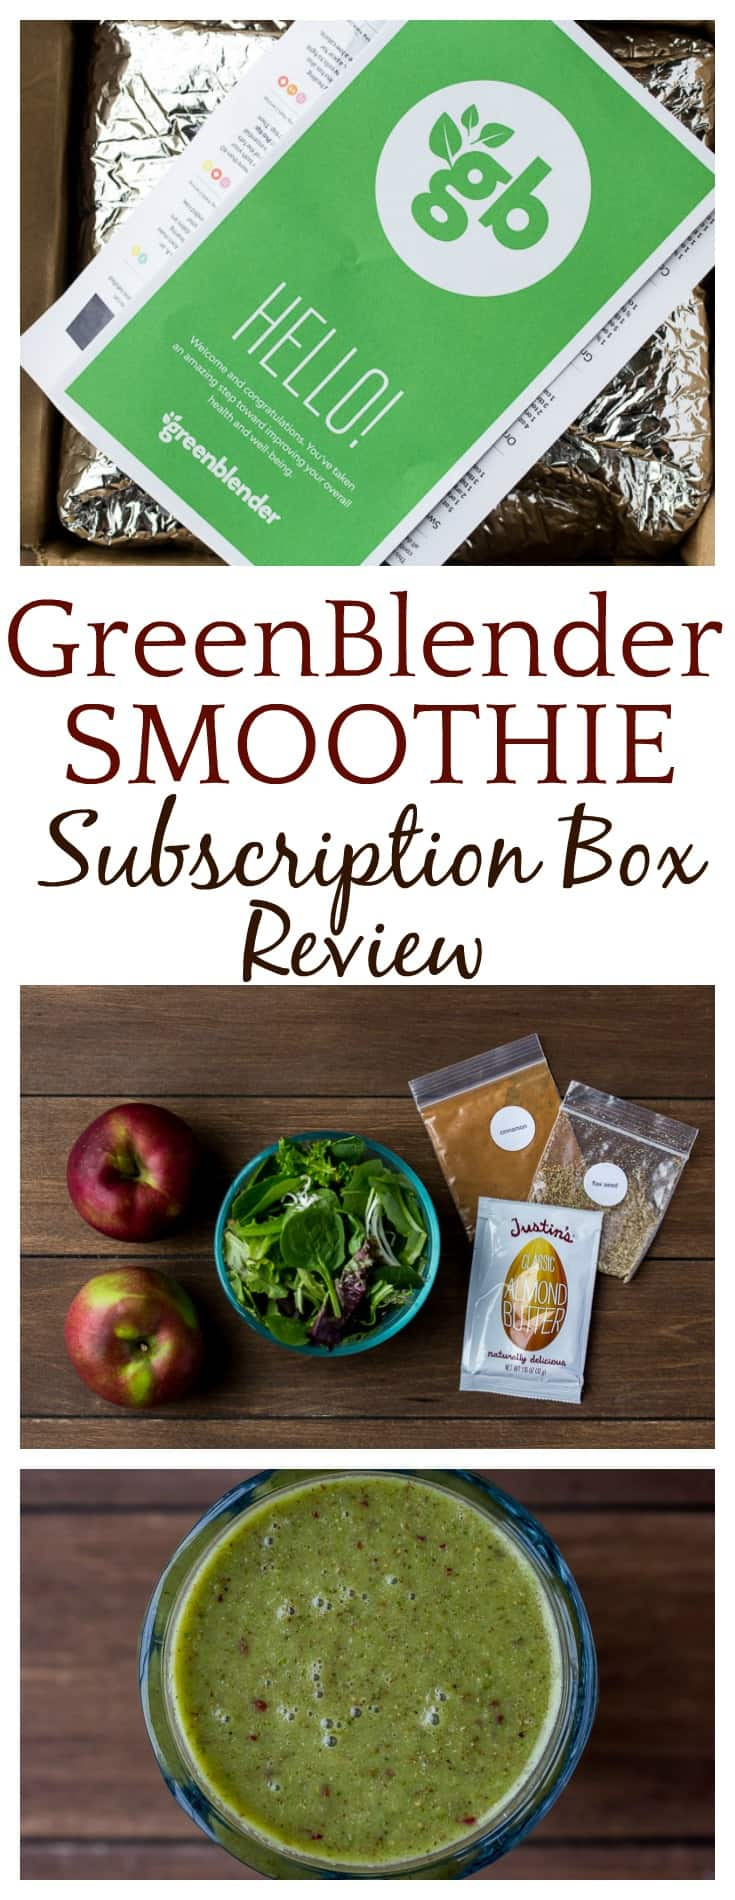 Love smoothies? Trying to incorporate more healthy fruits and vegetables in your diet? Then you must check out this February 2018 GreenBlender Review! GreenBlender is a smoothie subscription box that sends everything you need to make healthy, delicious smoothies at home! | #smoothies #smoothie #subscriptionbox #vegetarian #healthyfood #vegan